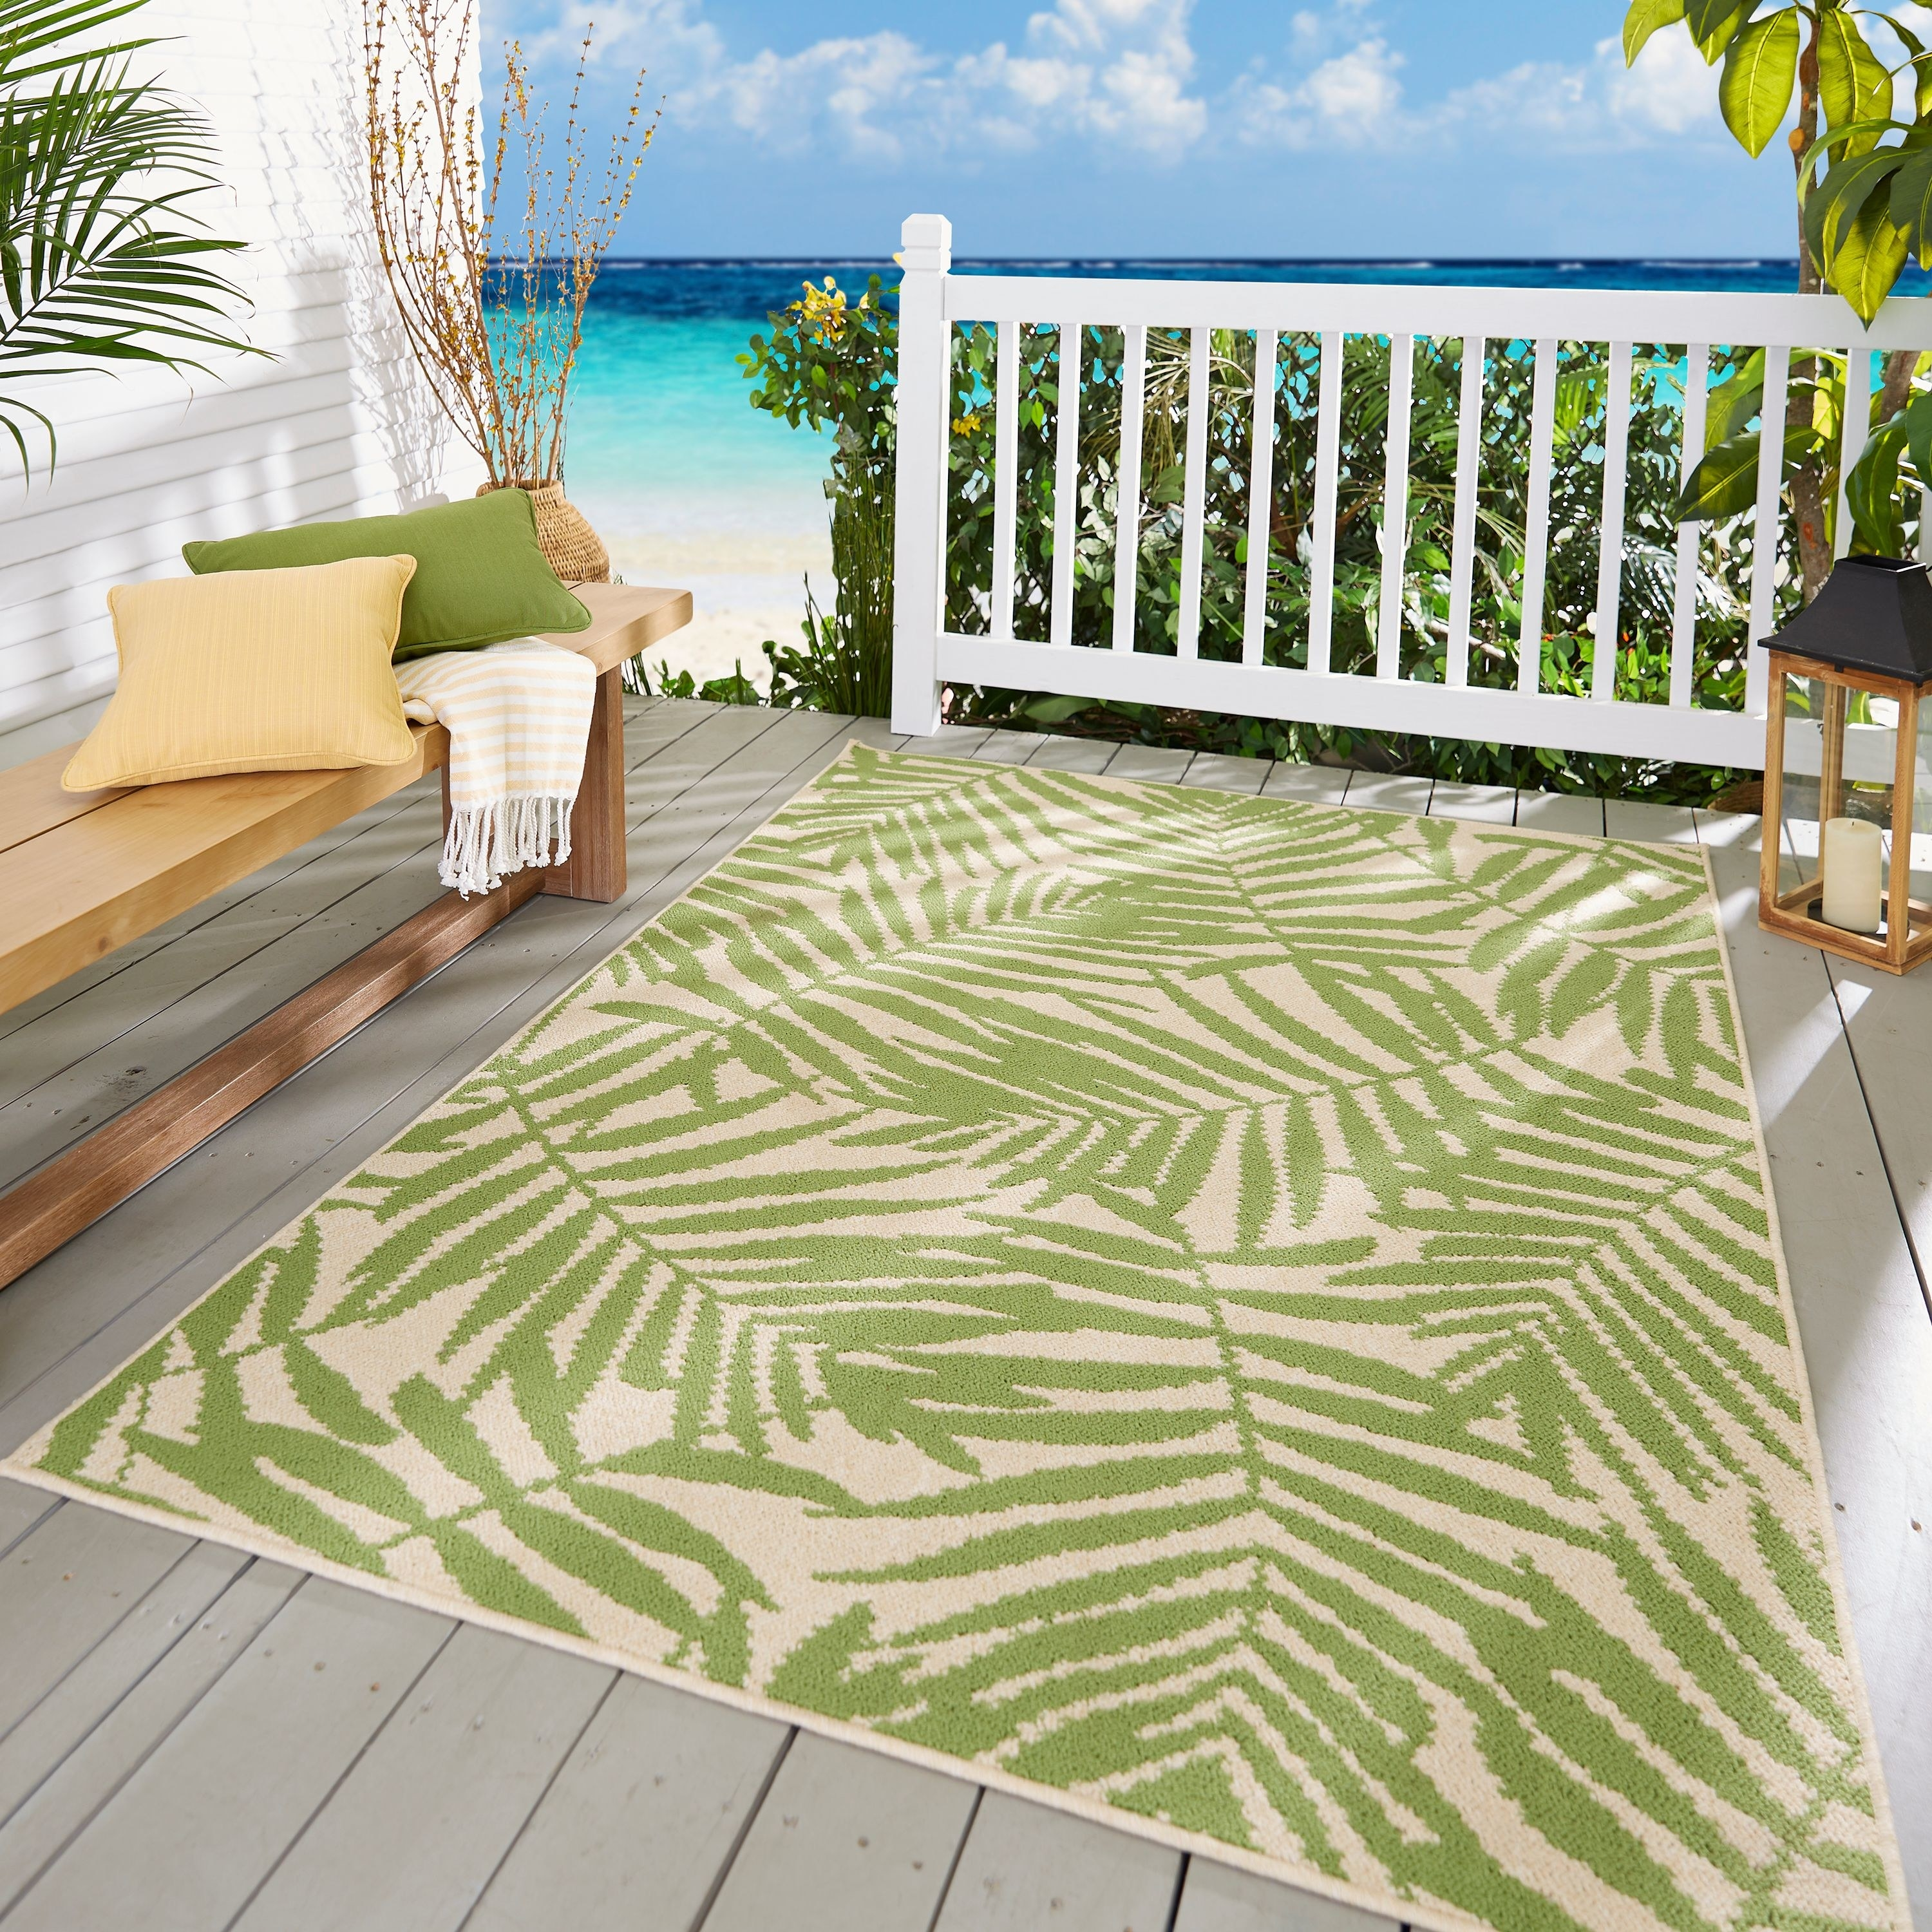 a off white rug with green oversized leaf patterns on it